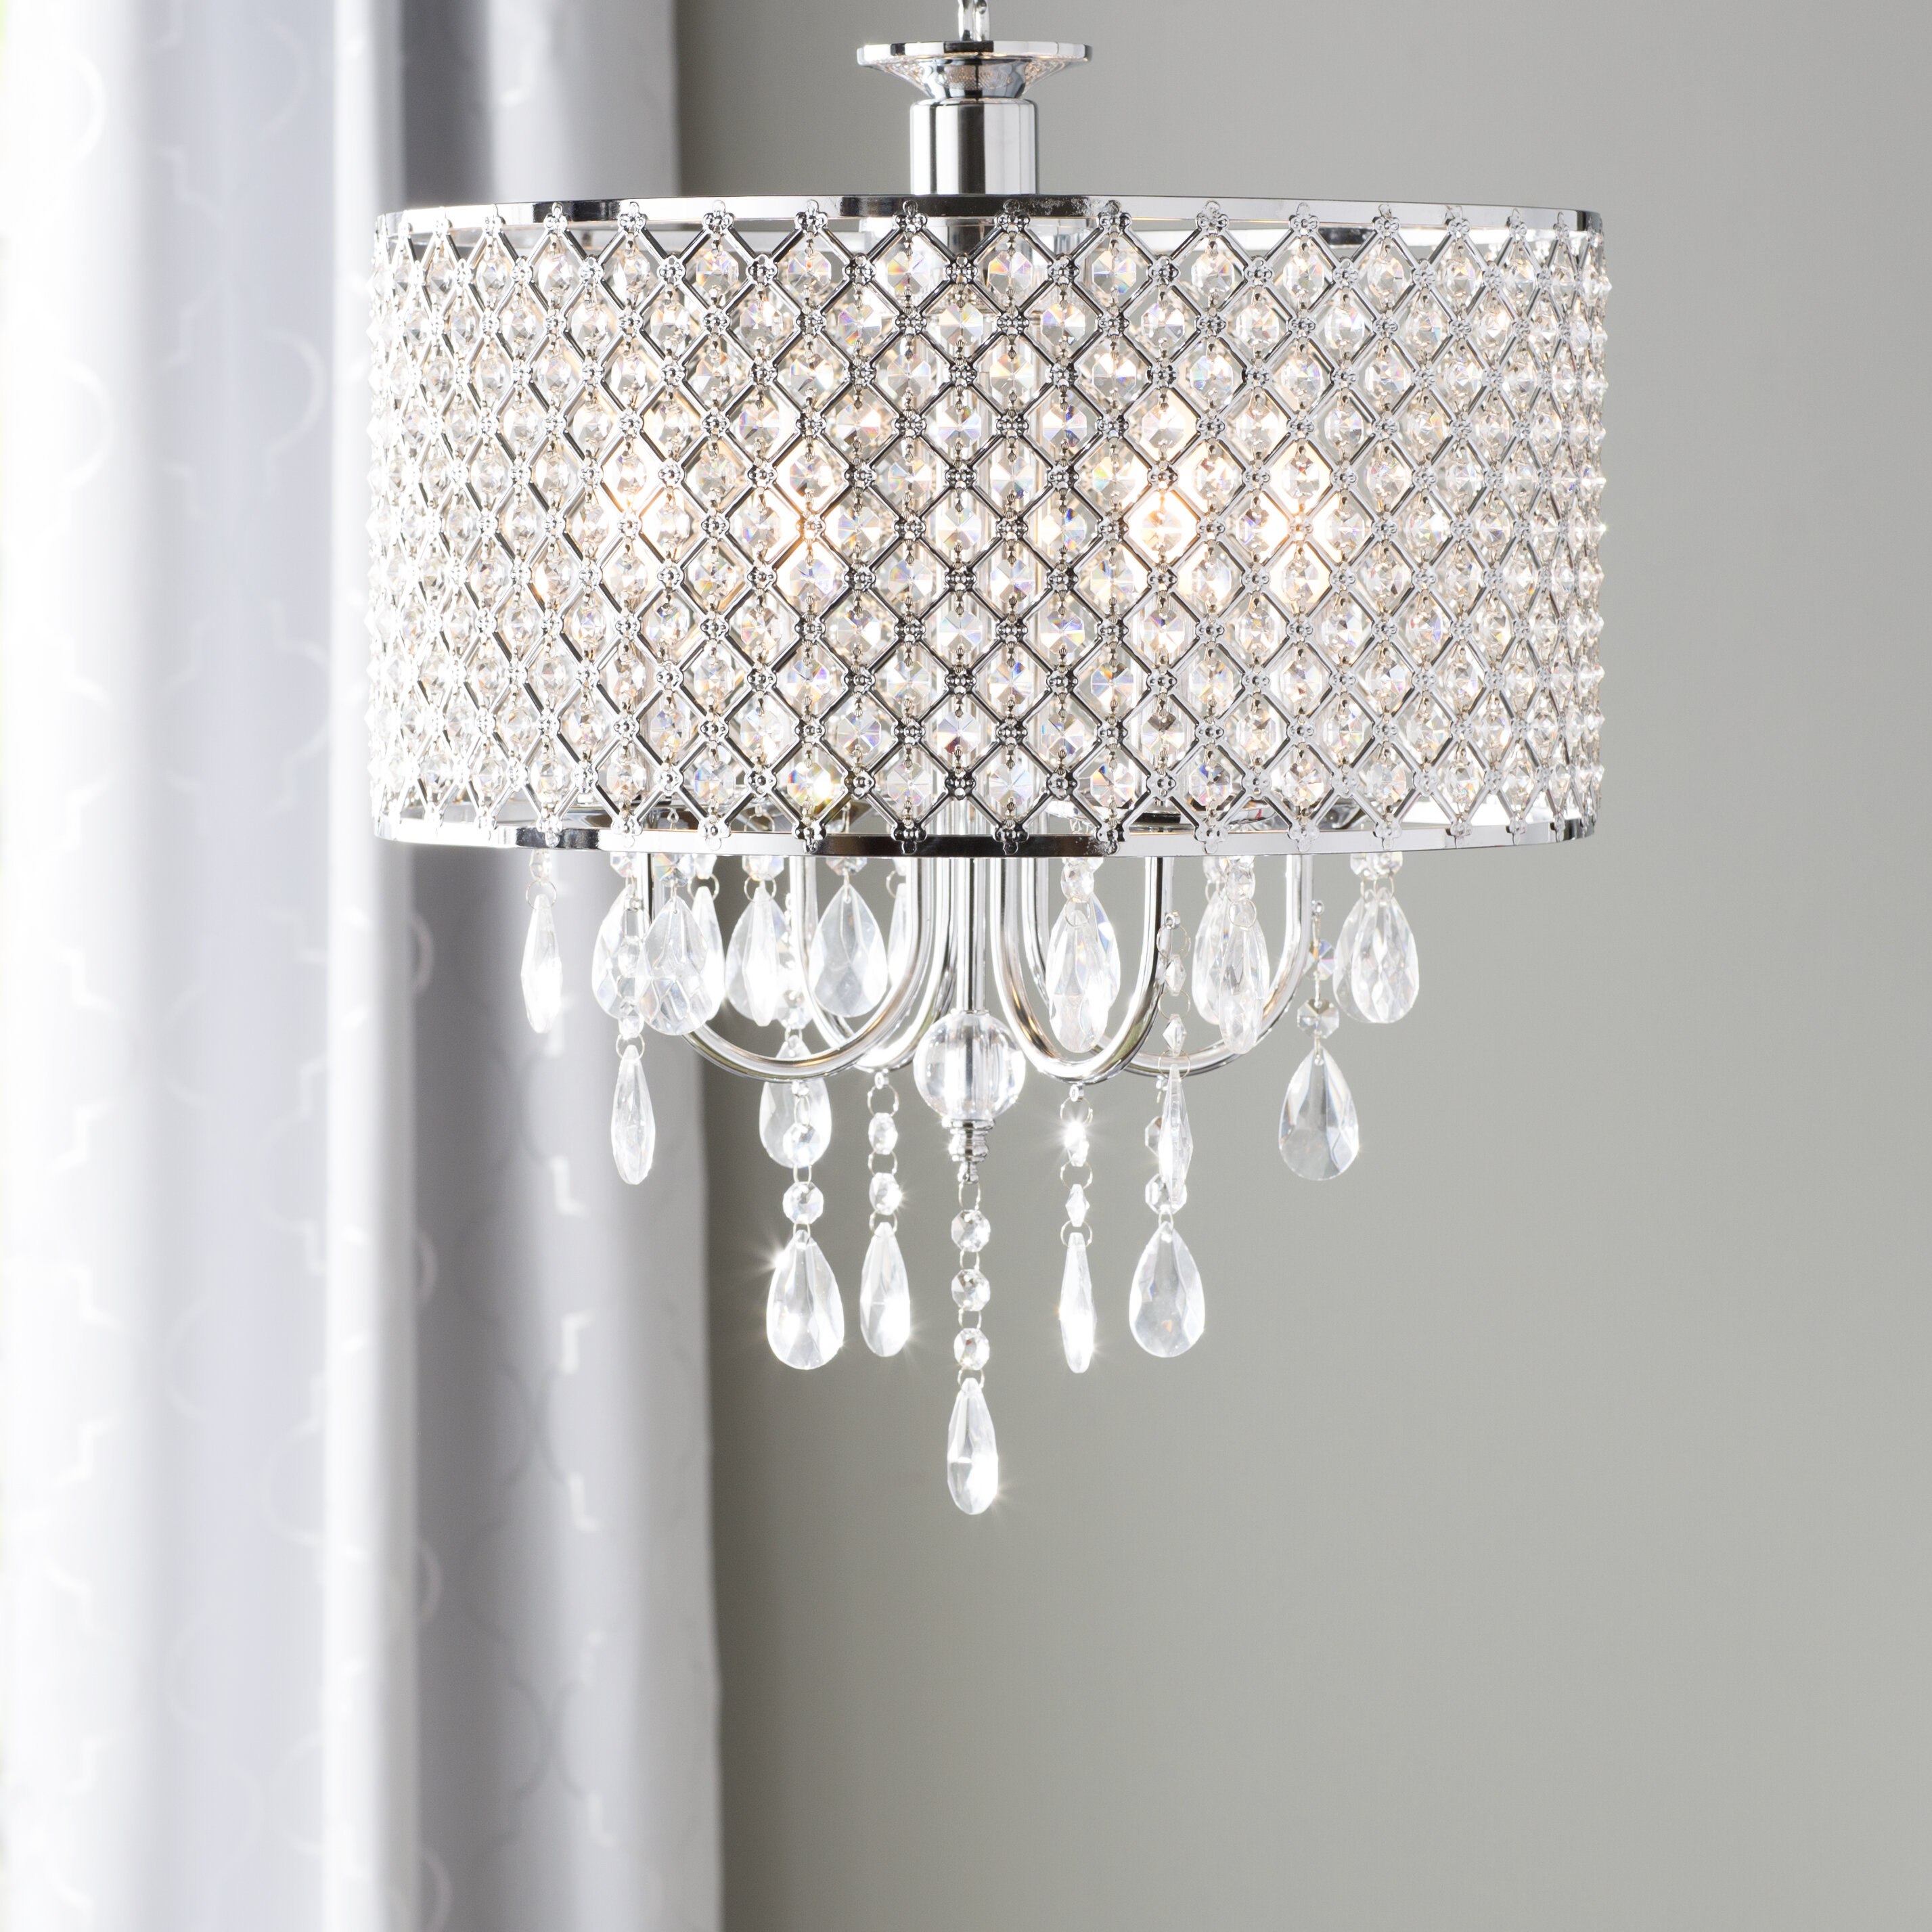 Willa Arlo Interiors Aurore 4 Light Led Crystal Chandelier Reviews Wayfair